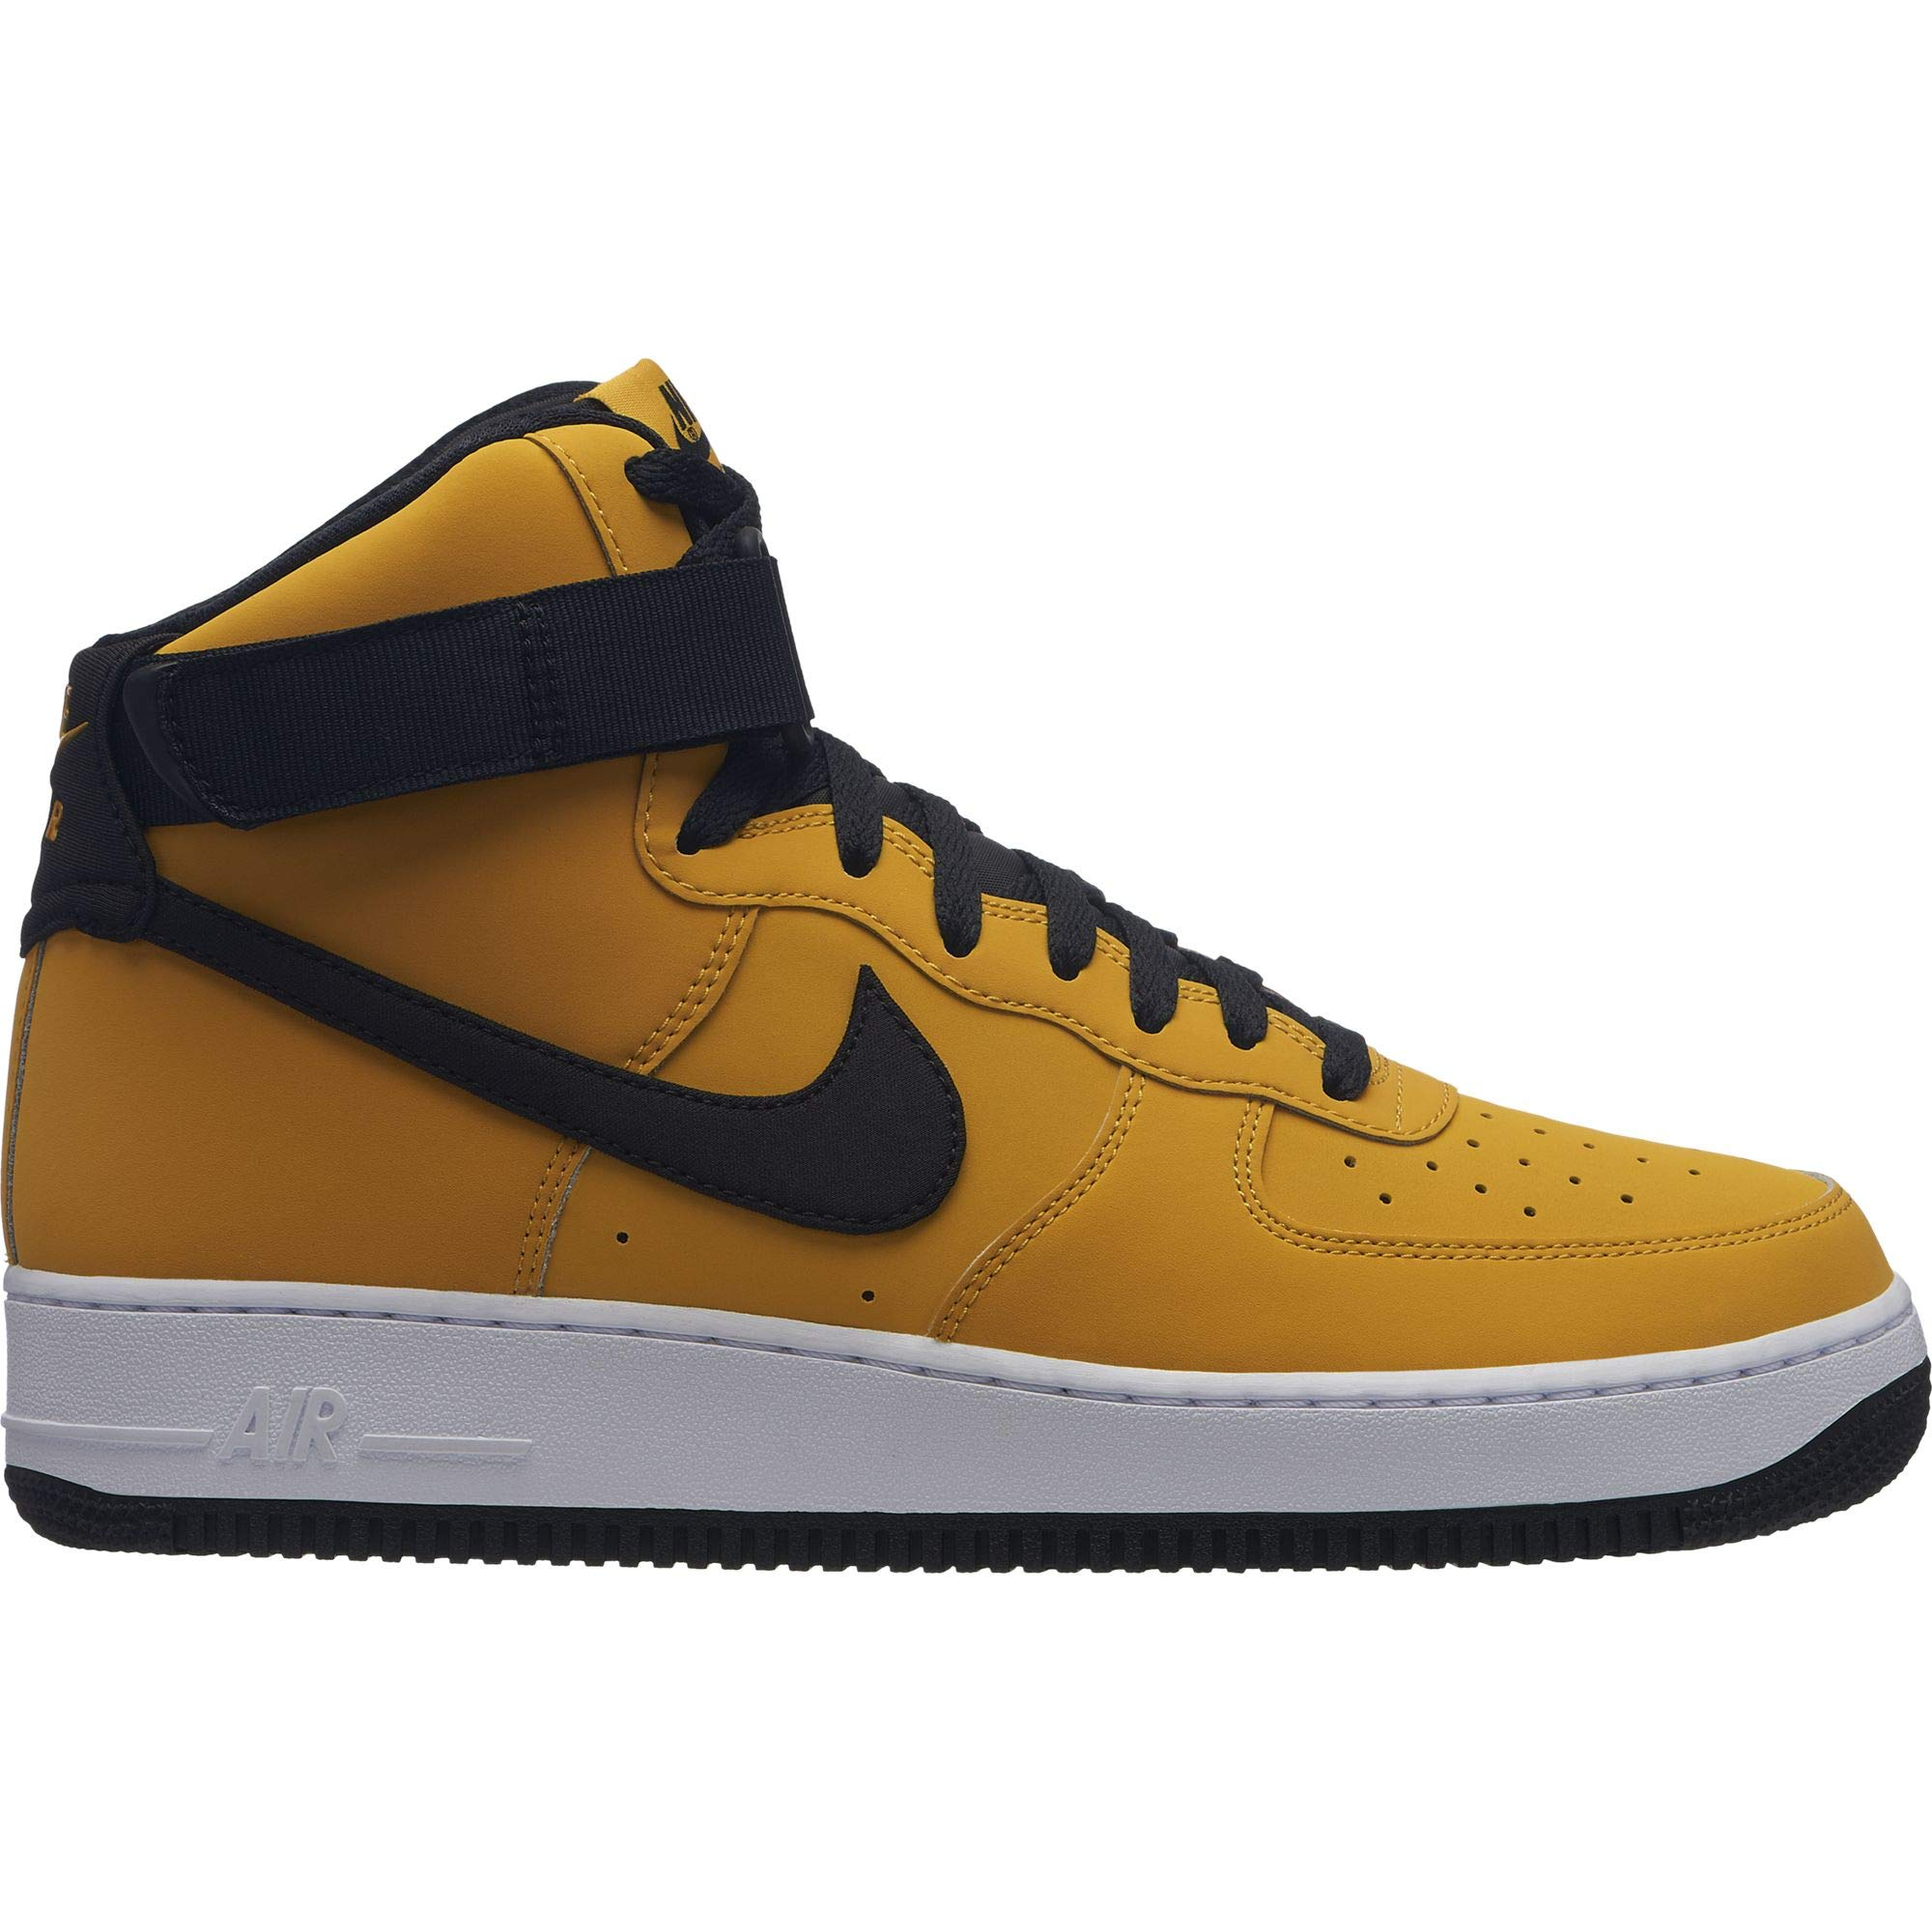 db02b4f0f0bff Nike Mens Air Force 1 High 07 Leather Basketball Shoe, Yellow  Ochre/Black-White, 11